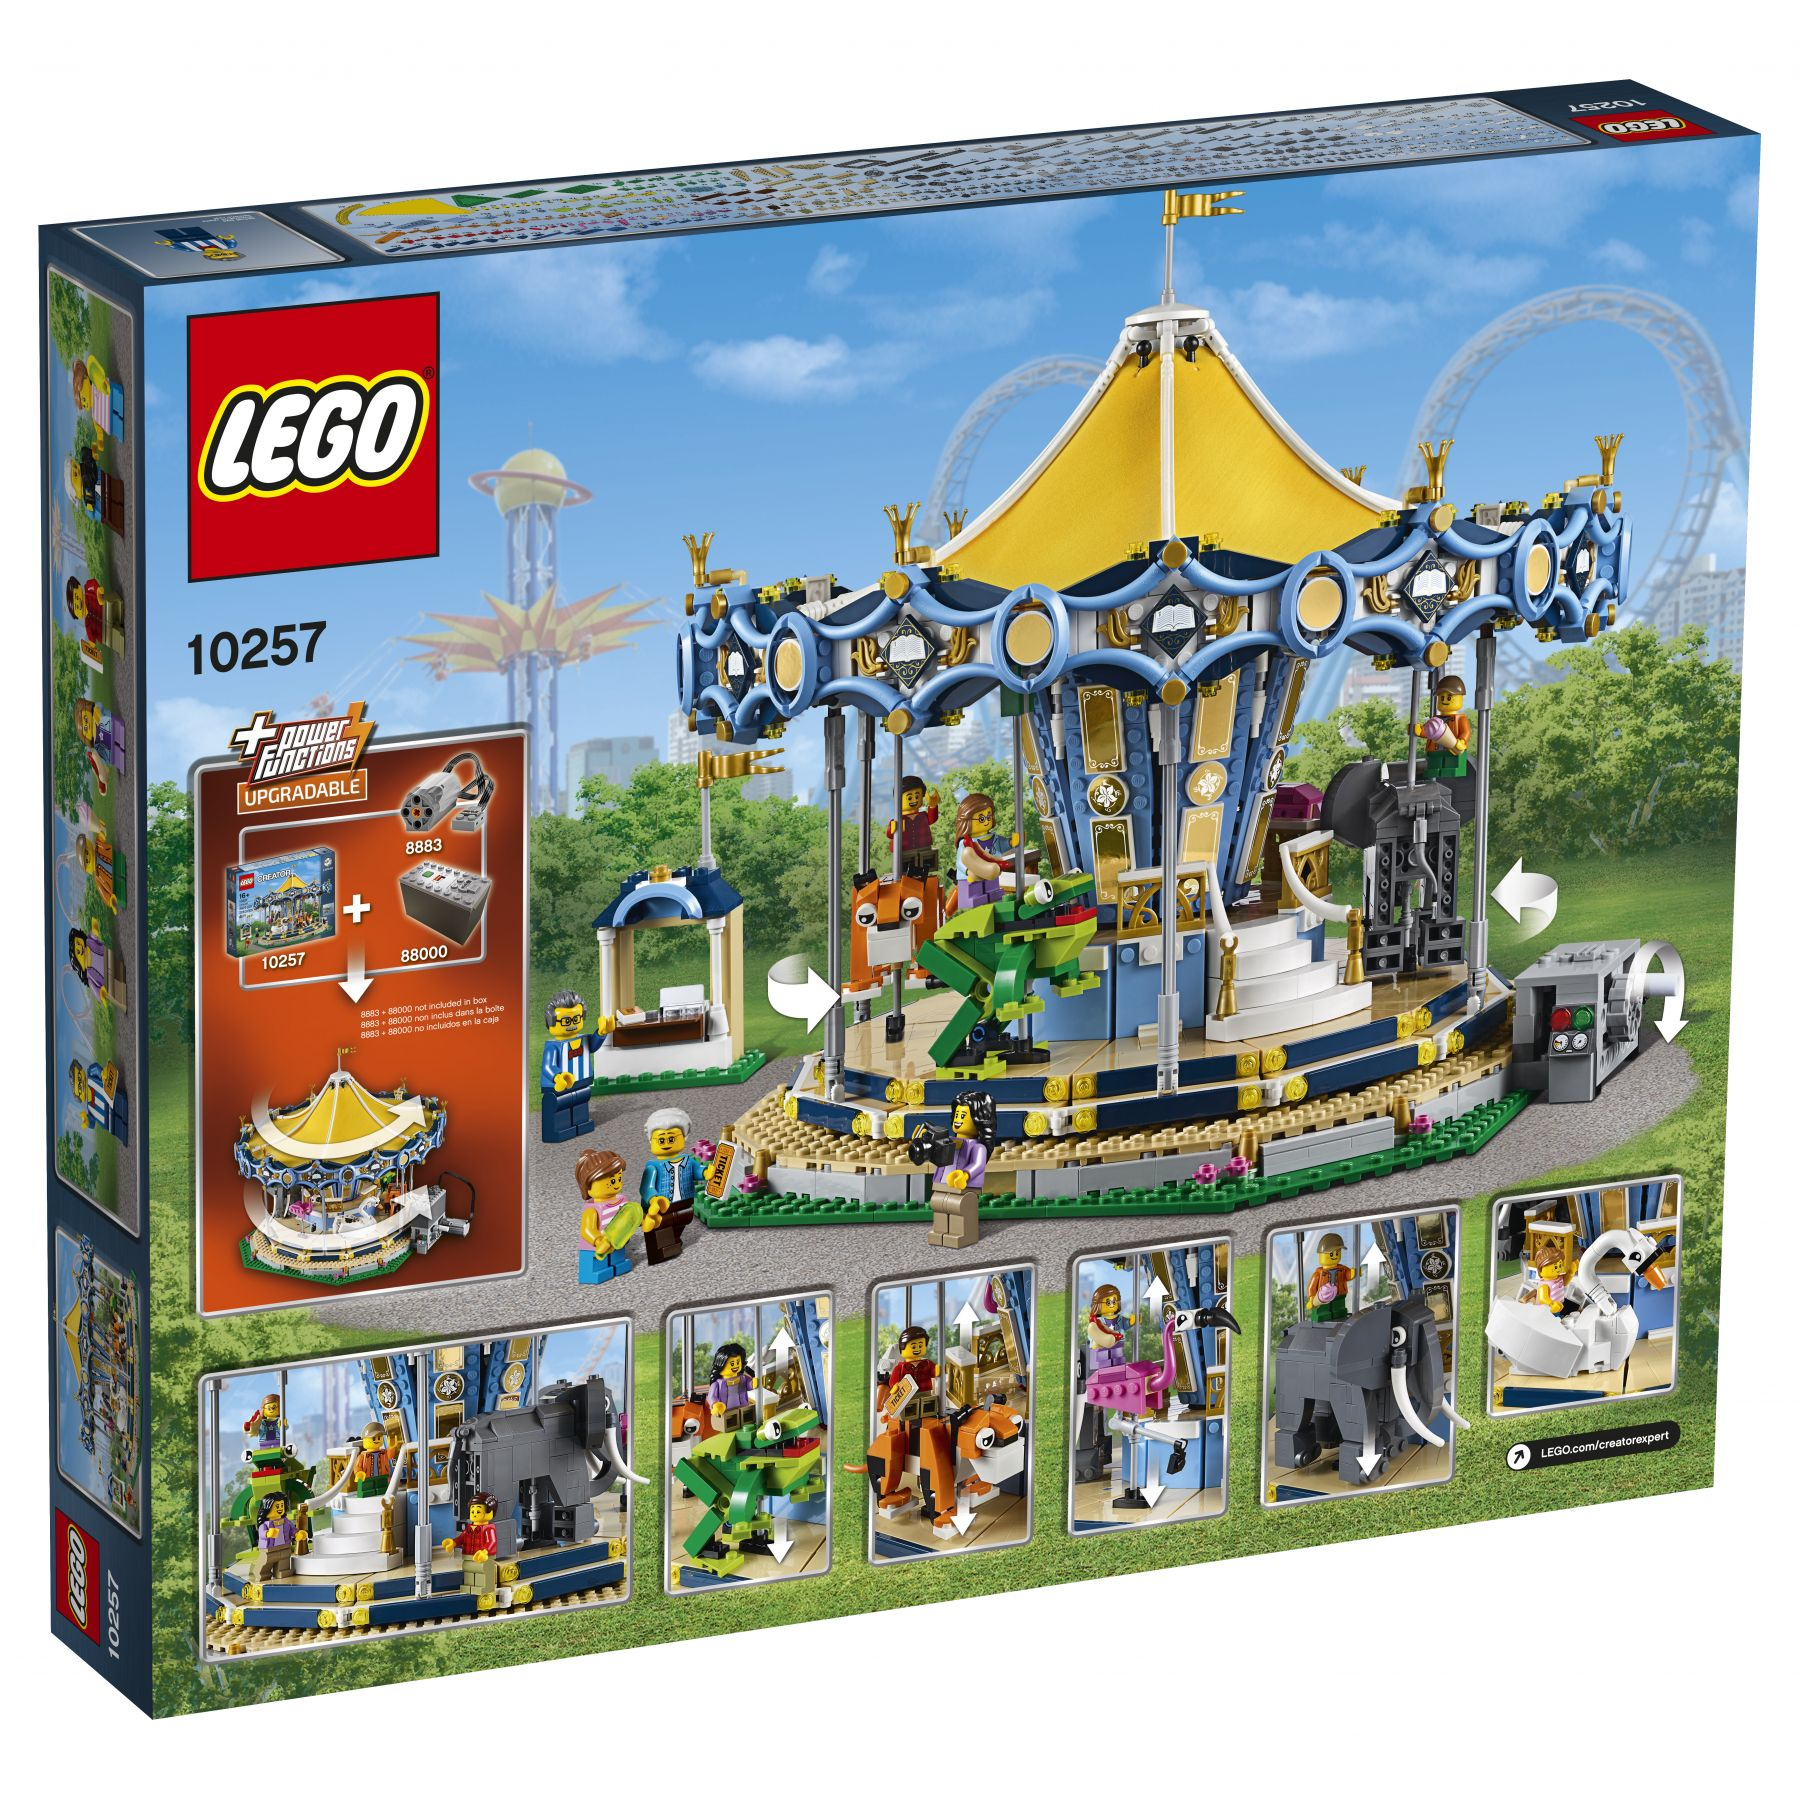 LEGO Advanced Models 10257 Karussell LEGO_10257_Fairground_Carousel_Box5_v39.jpg